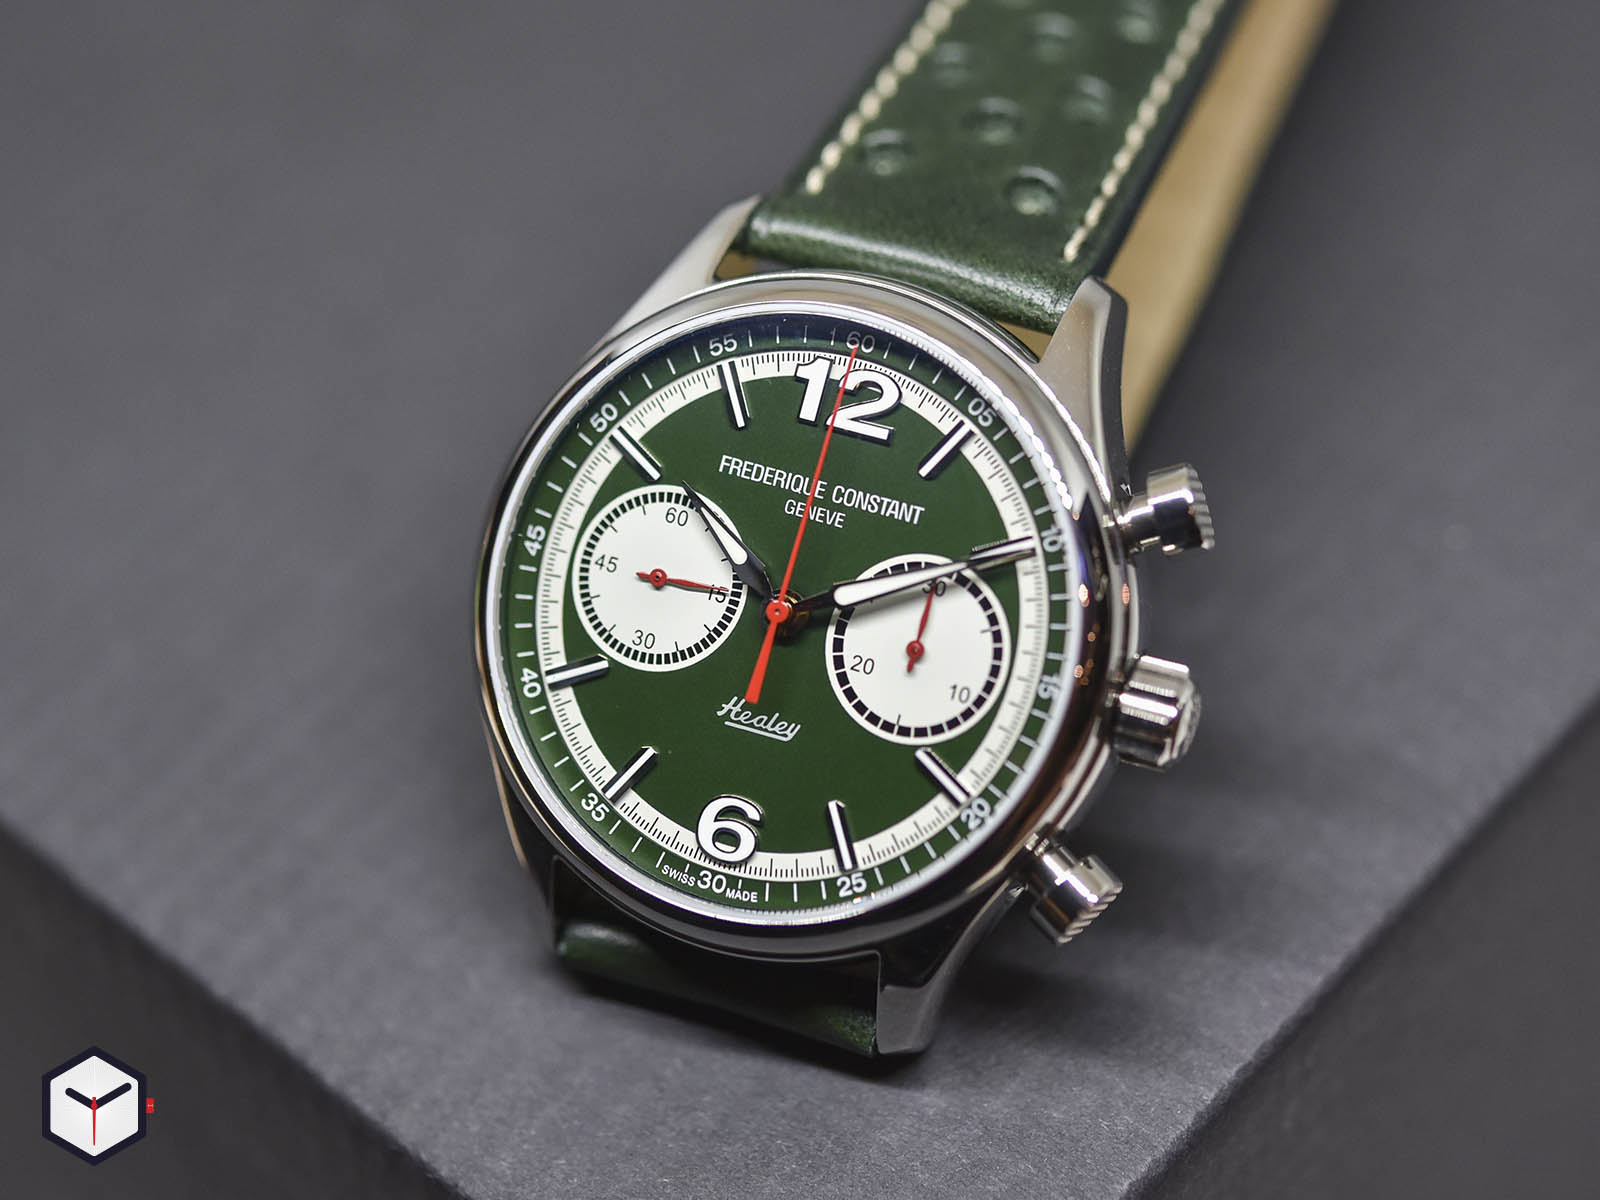 fc-397hgr5b6-frederique-constant-vintage-rally-healey-chronograph-1.jpg